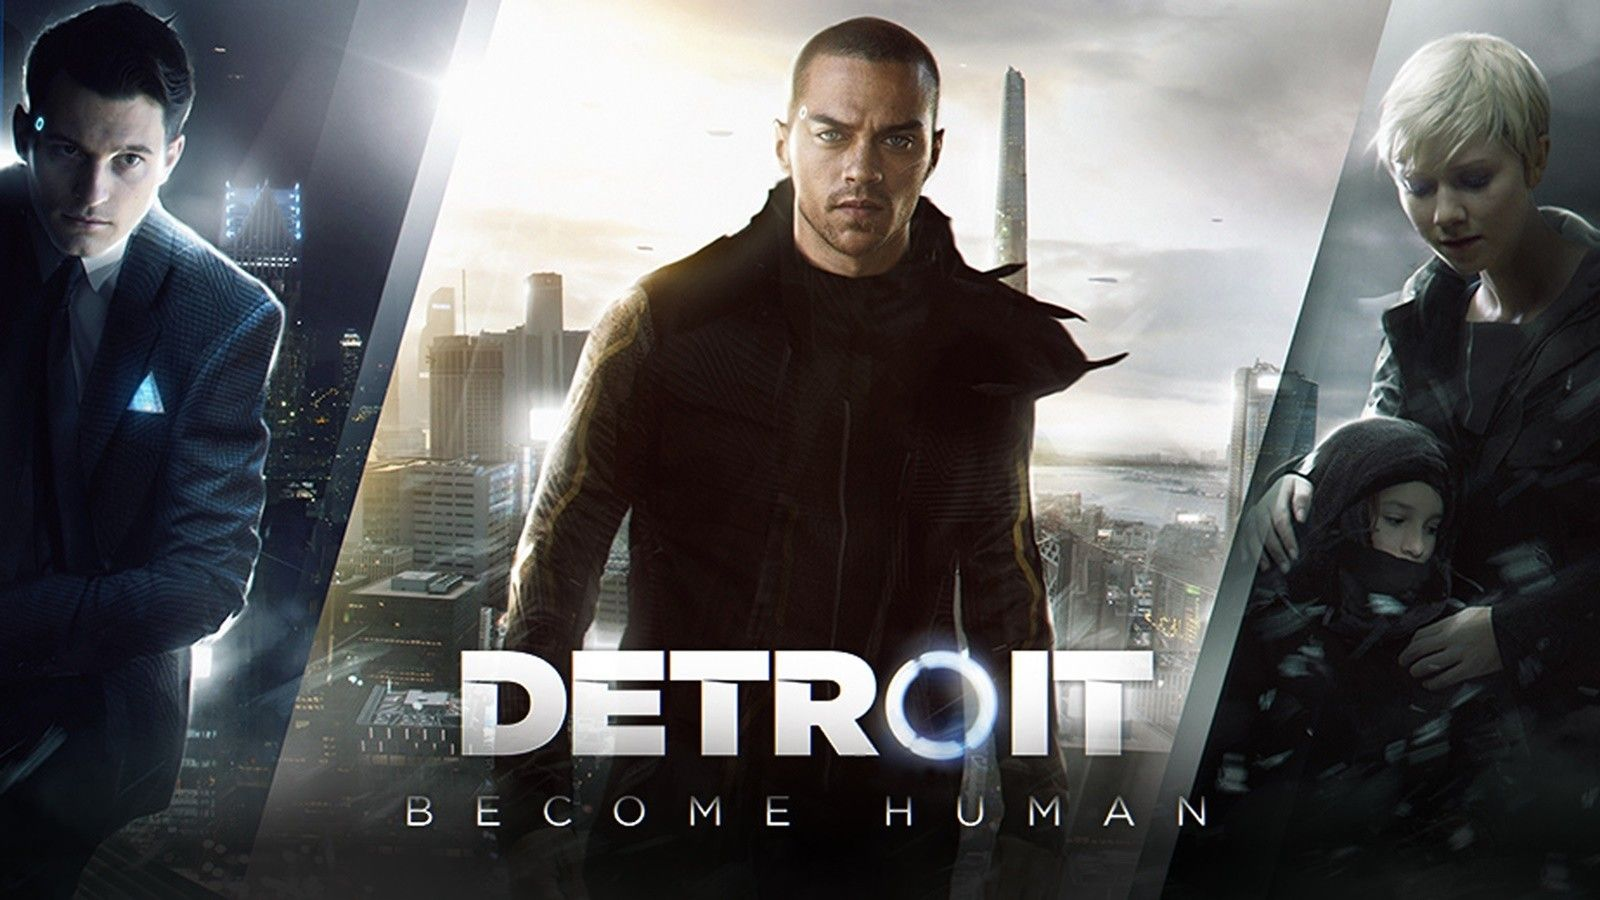 Detroit Become Human Hd Wallpaper: 'Detroit: Become Human' Download Time: When Can You Start